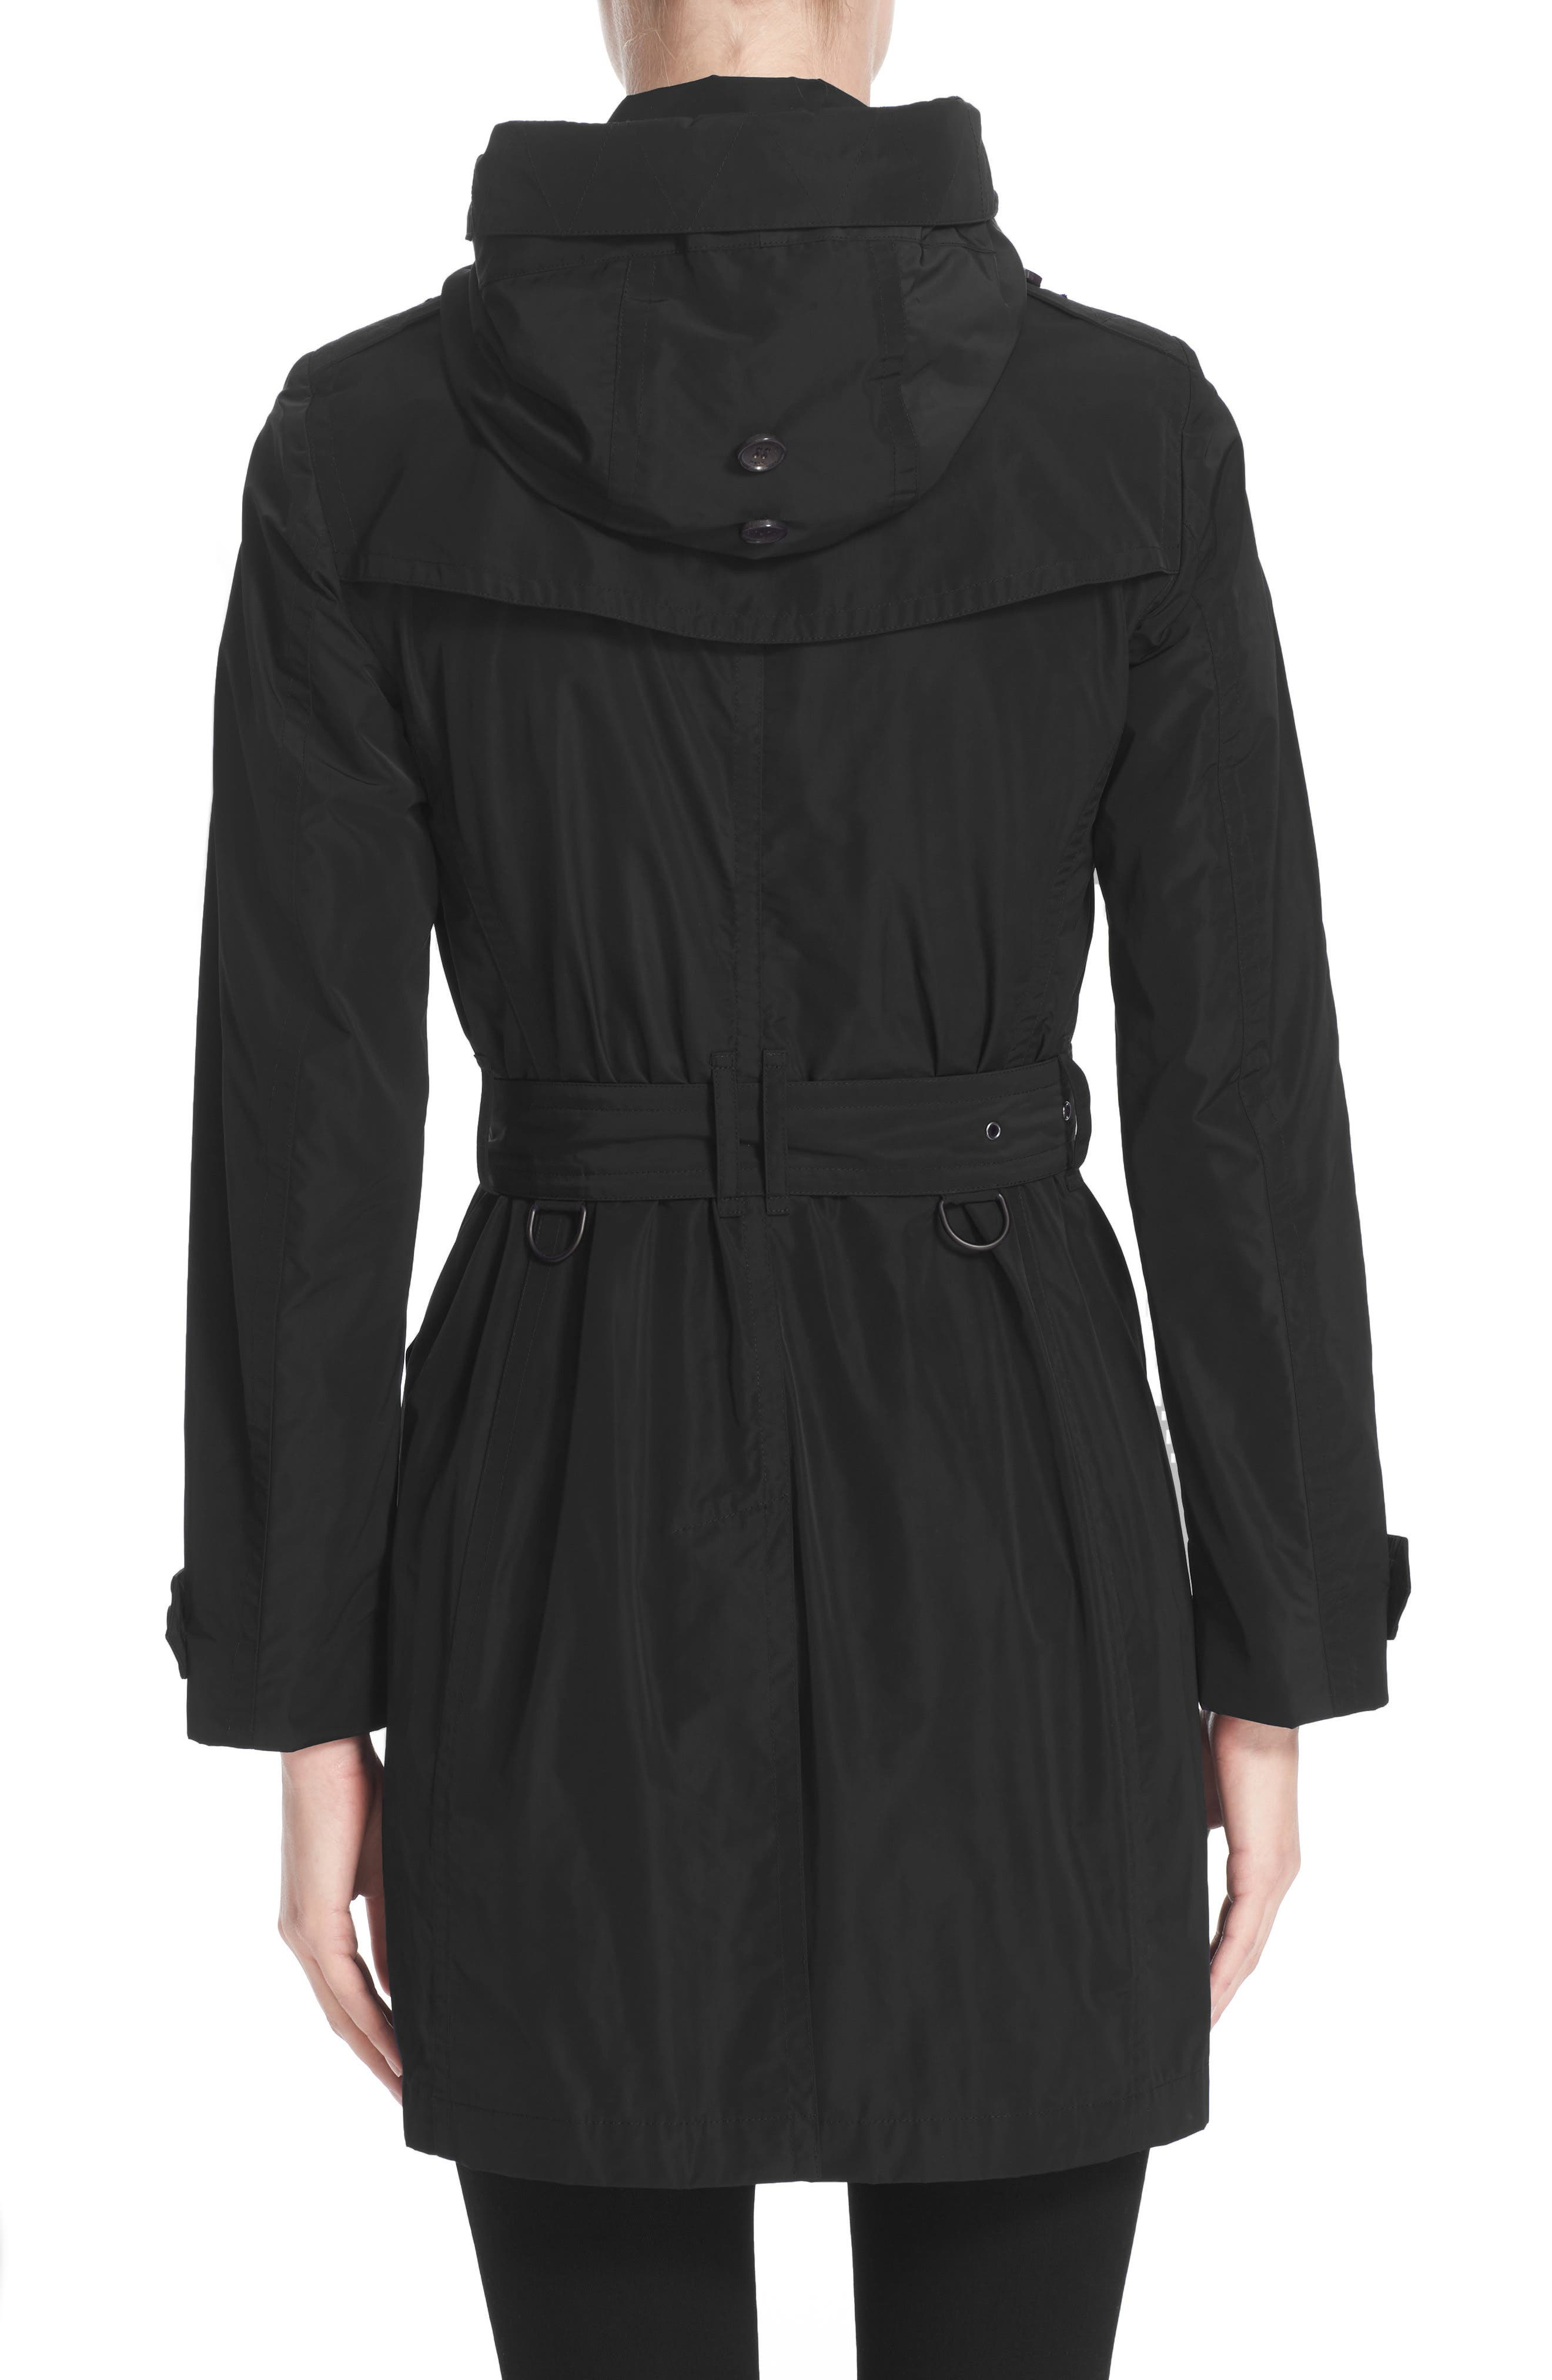 BURBERRY, Balmoral Packable Trench, Alternate thumbnail 4, color, 001